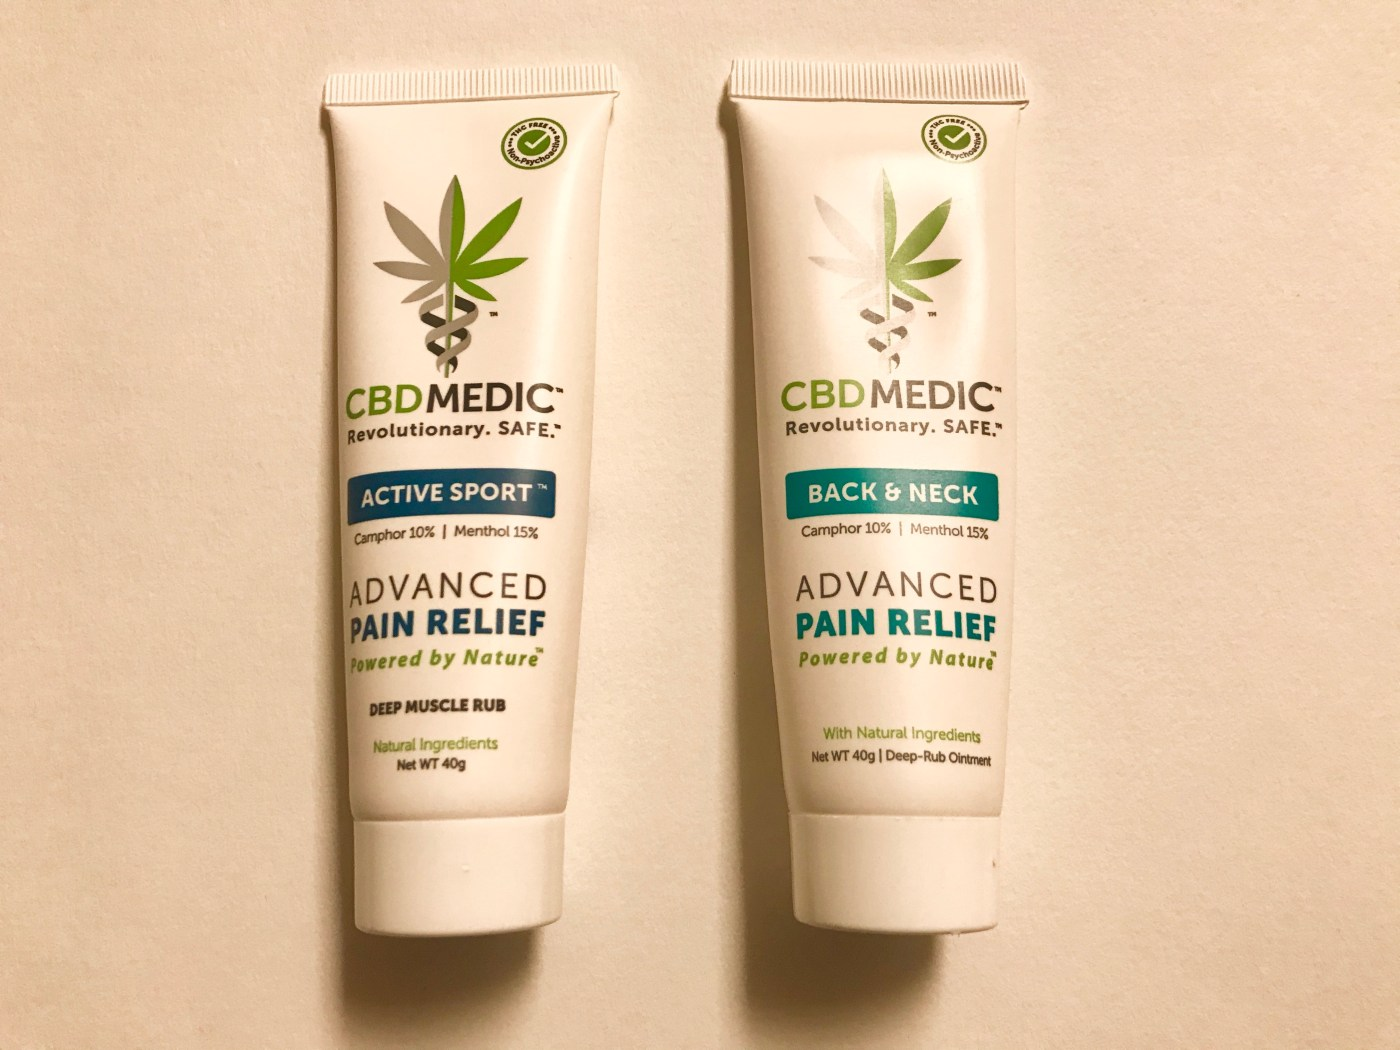 CBDMedic advanced pain relief back and neck